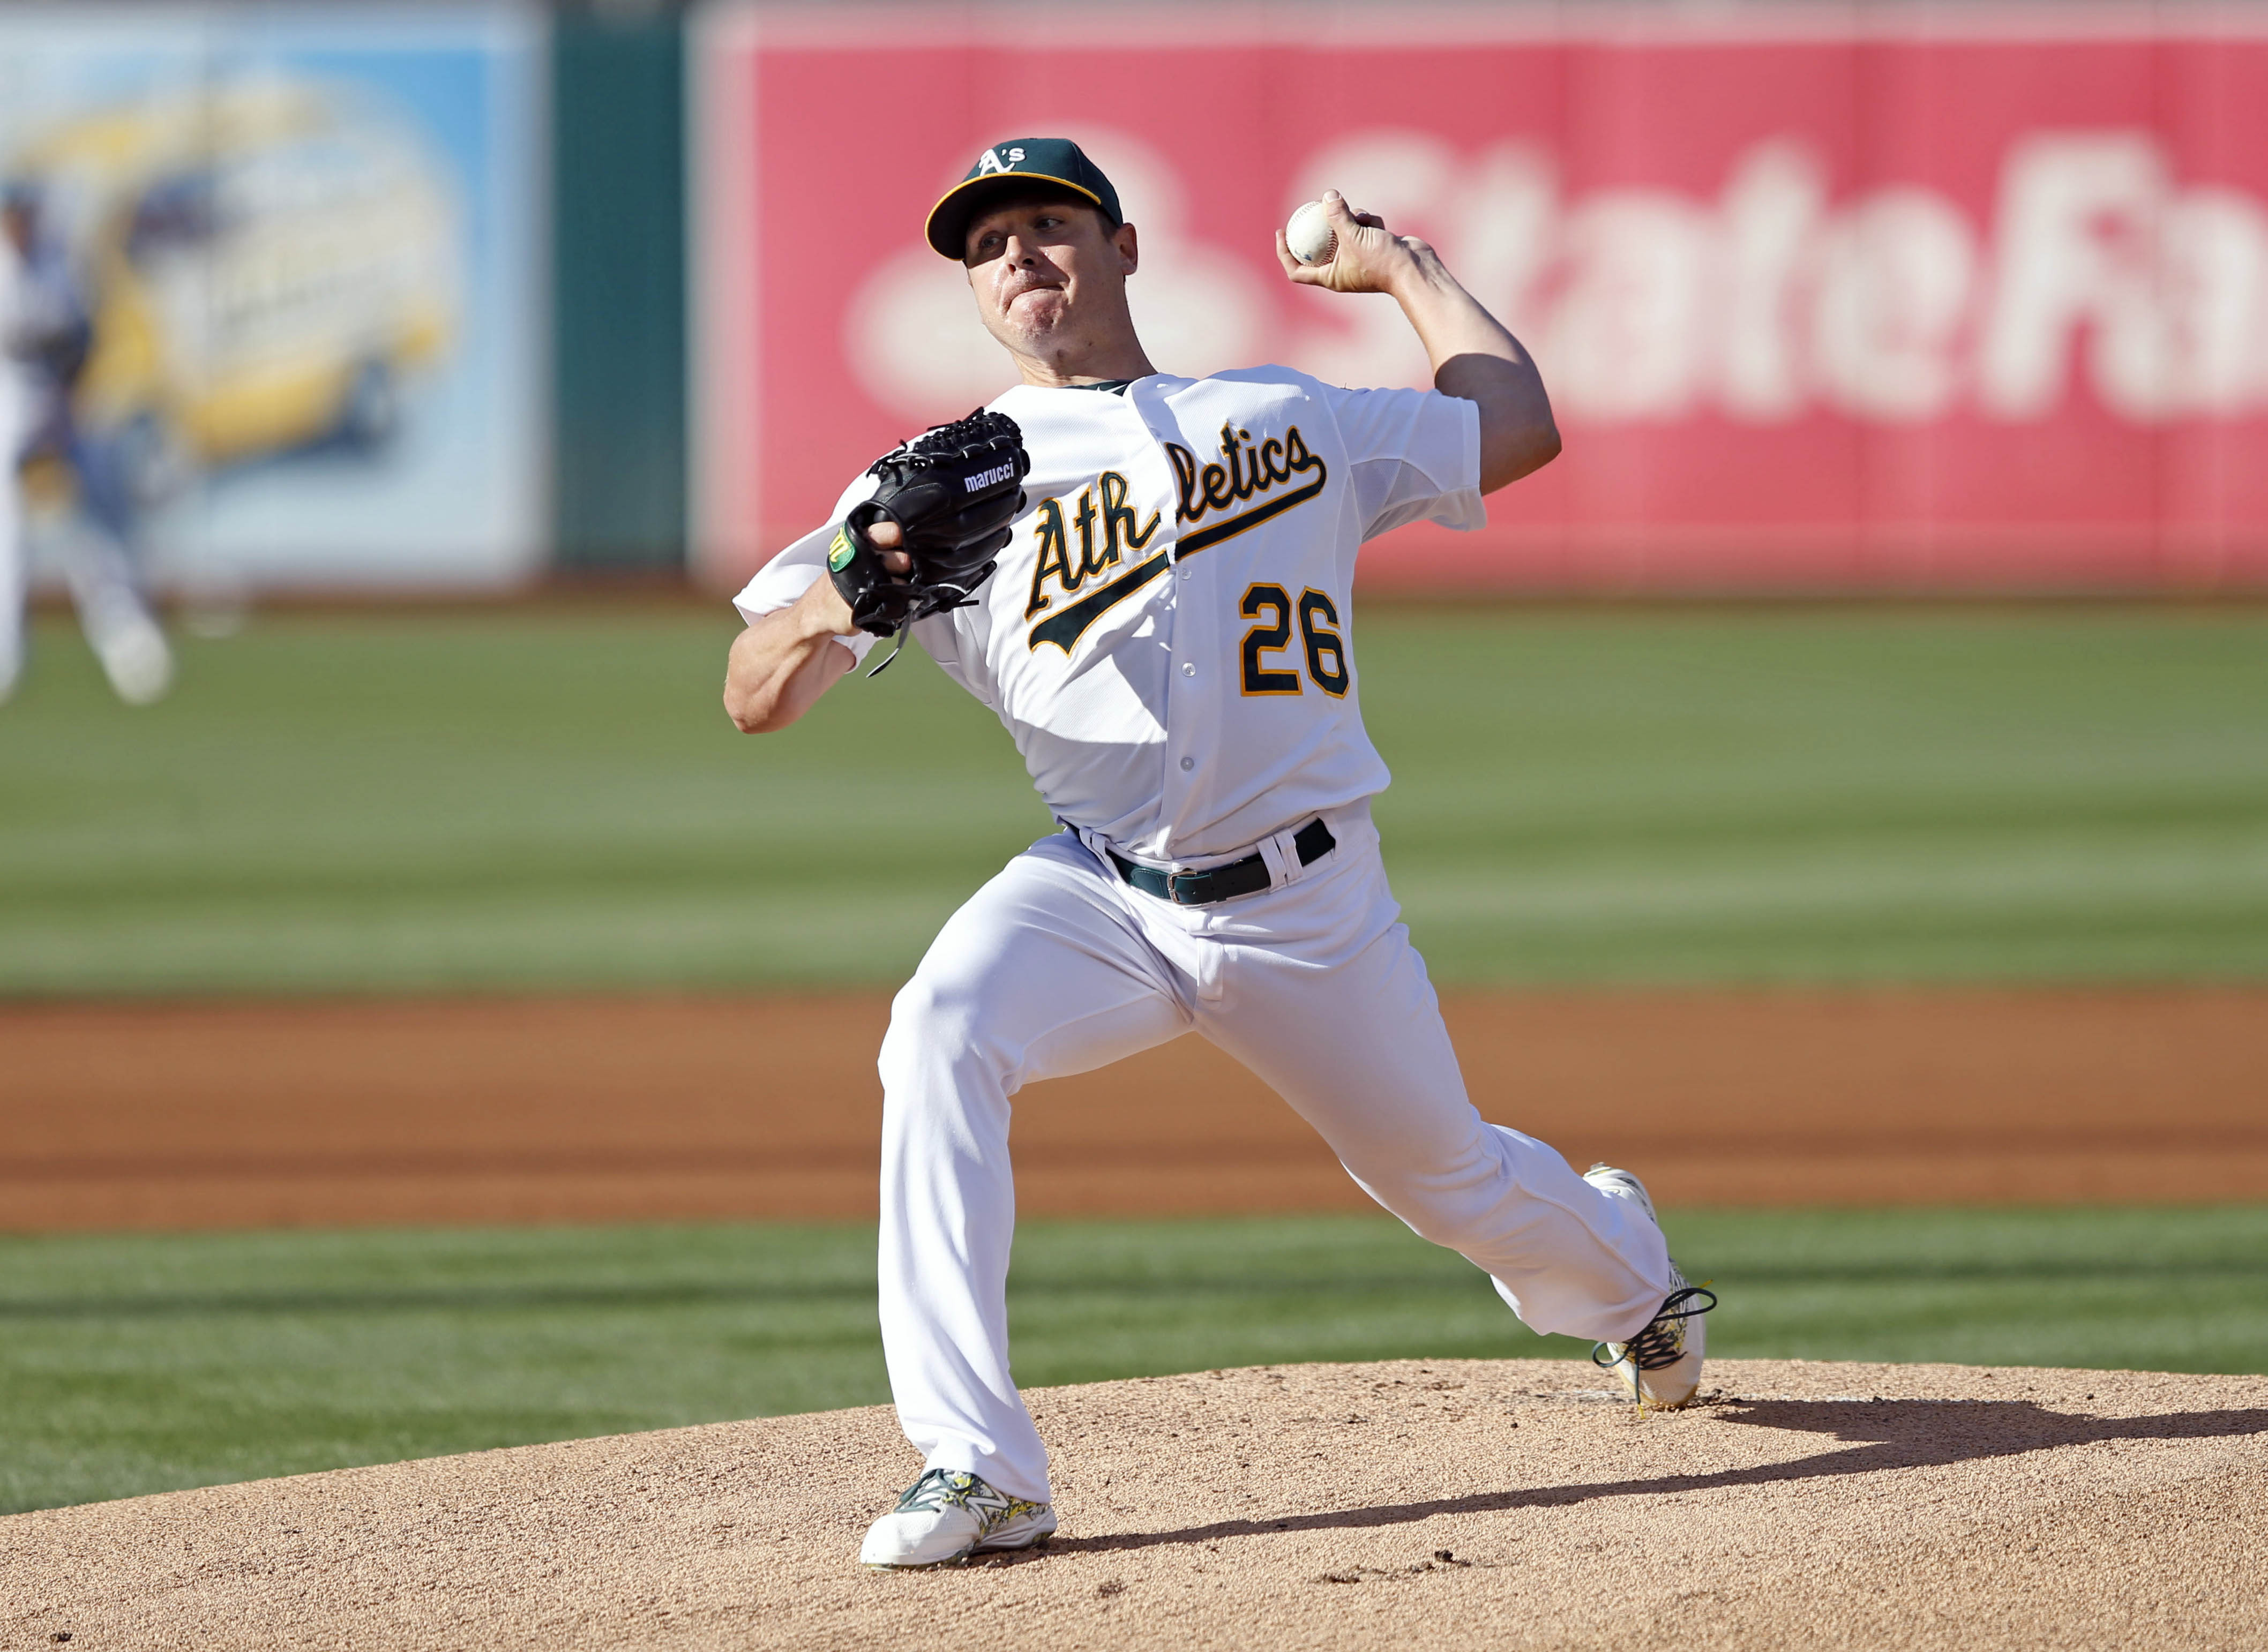 Kazmir's cutter-enabled excellence will, hopefully, translate to Texas.